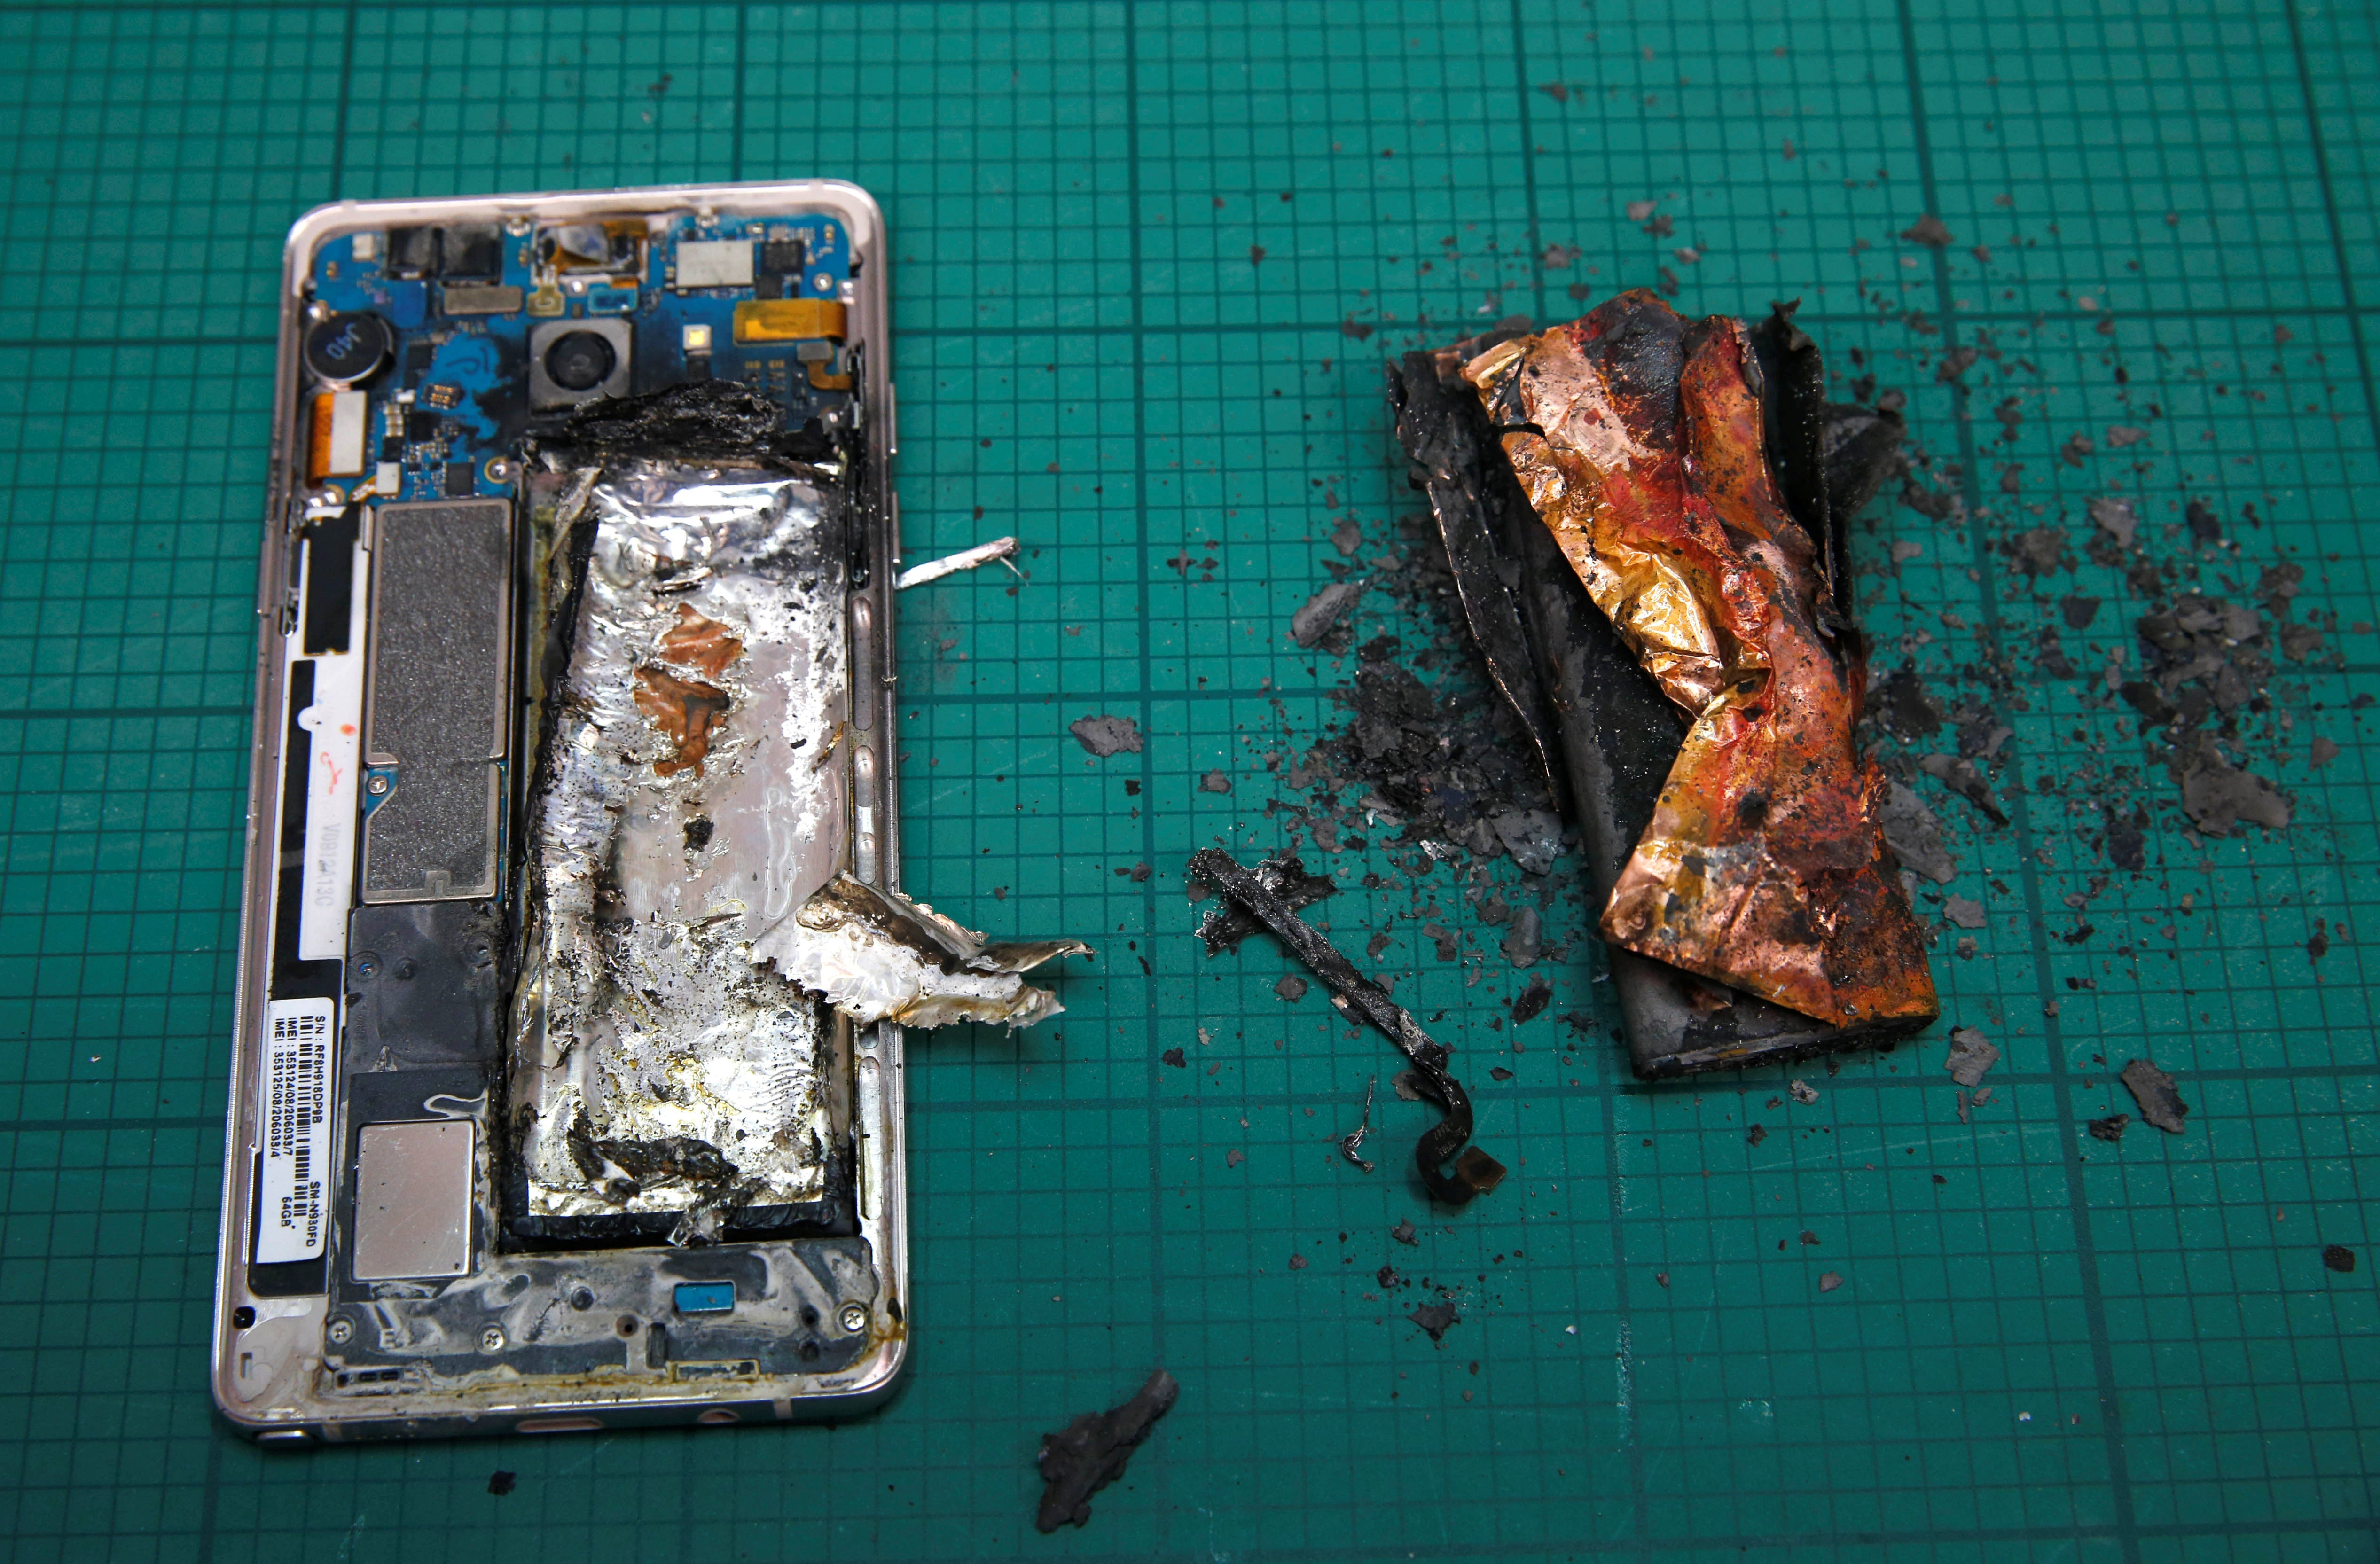 Samsung Galaxy Note Fire Battery Explode Orig Wants To Force Its